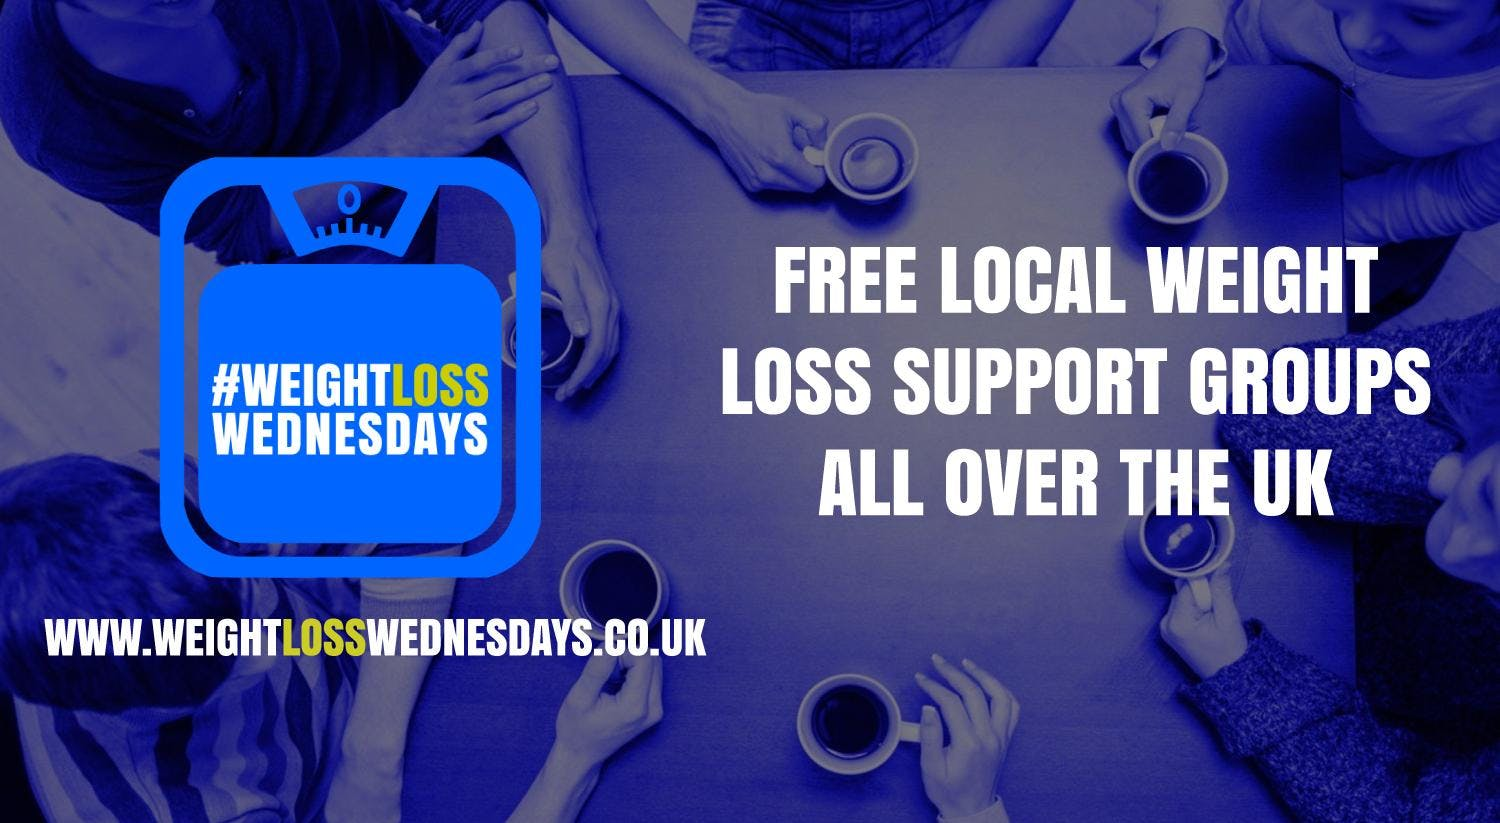 WEIGHT LOSS WEDNESDAYS! Free weekly support group in Bilston